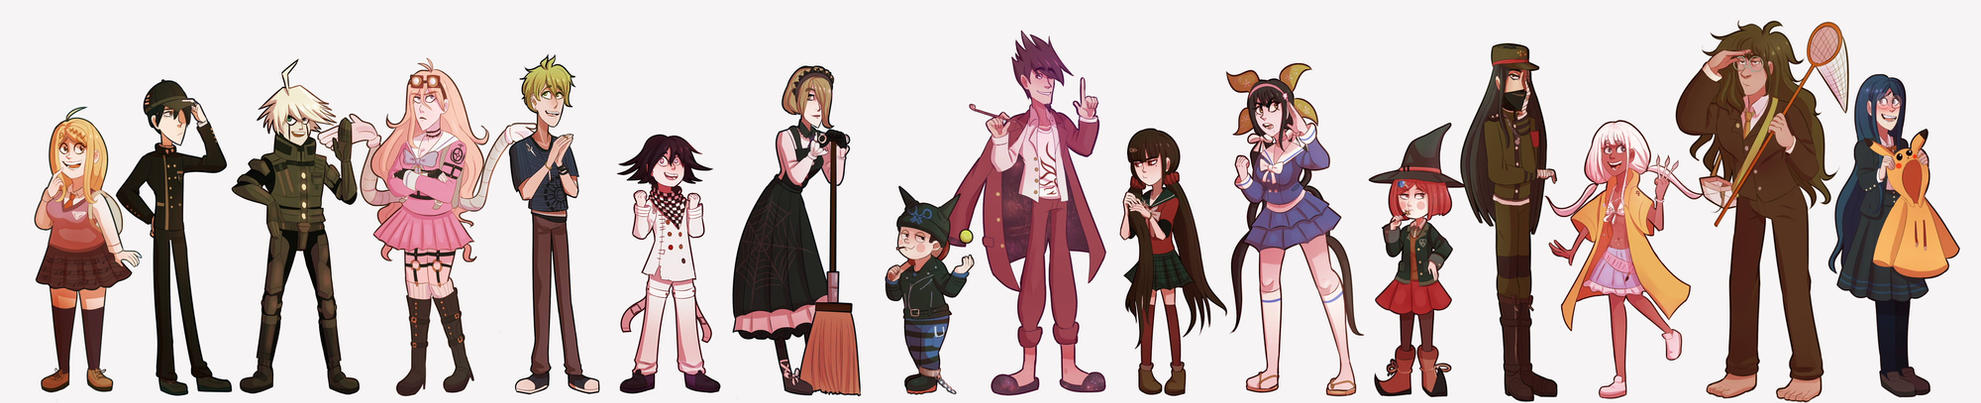 NDRV3 characters lineup by Miss-Ponytails